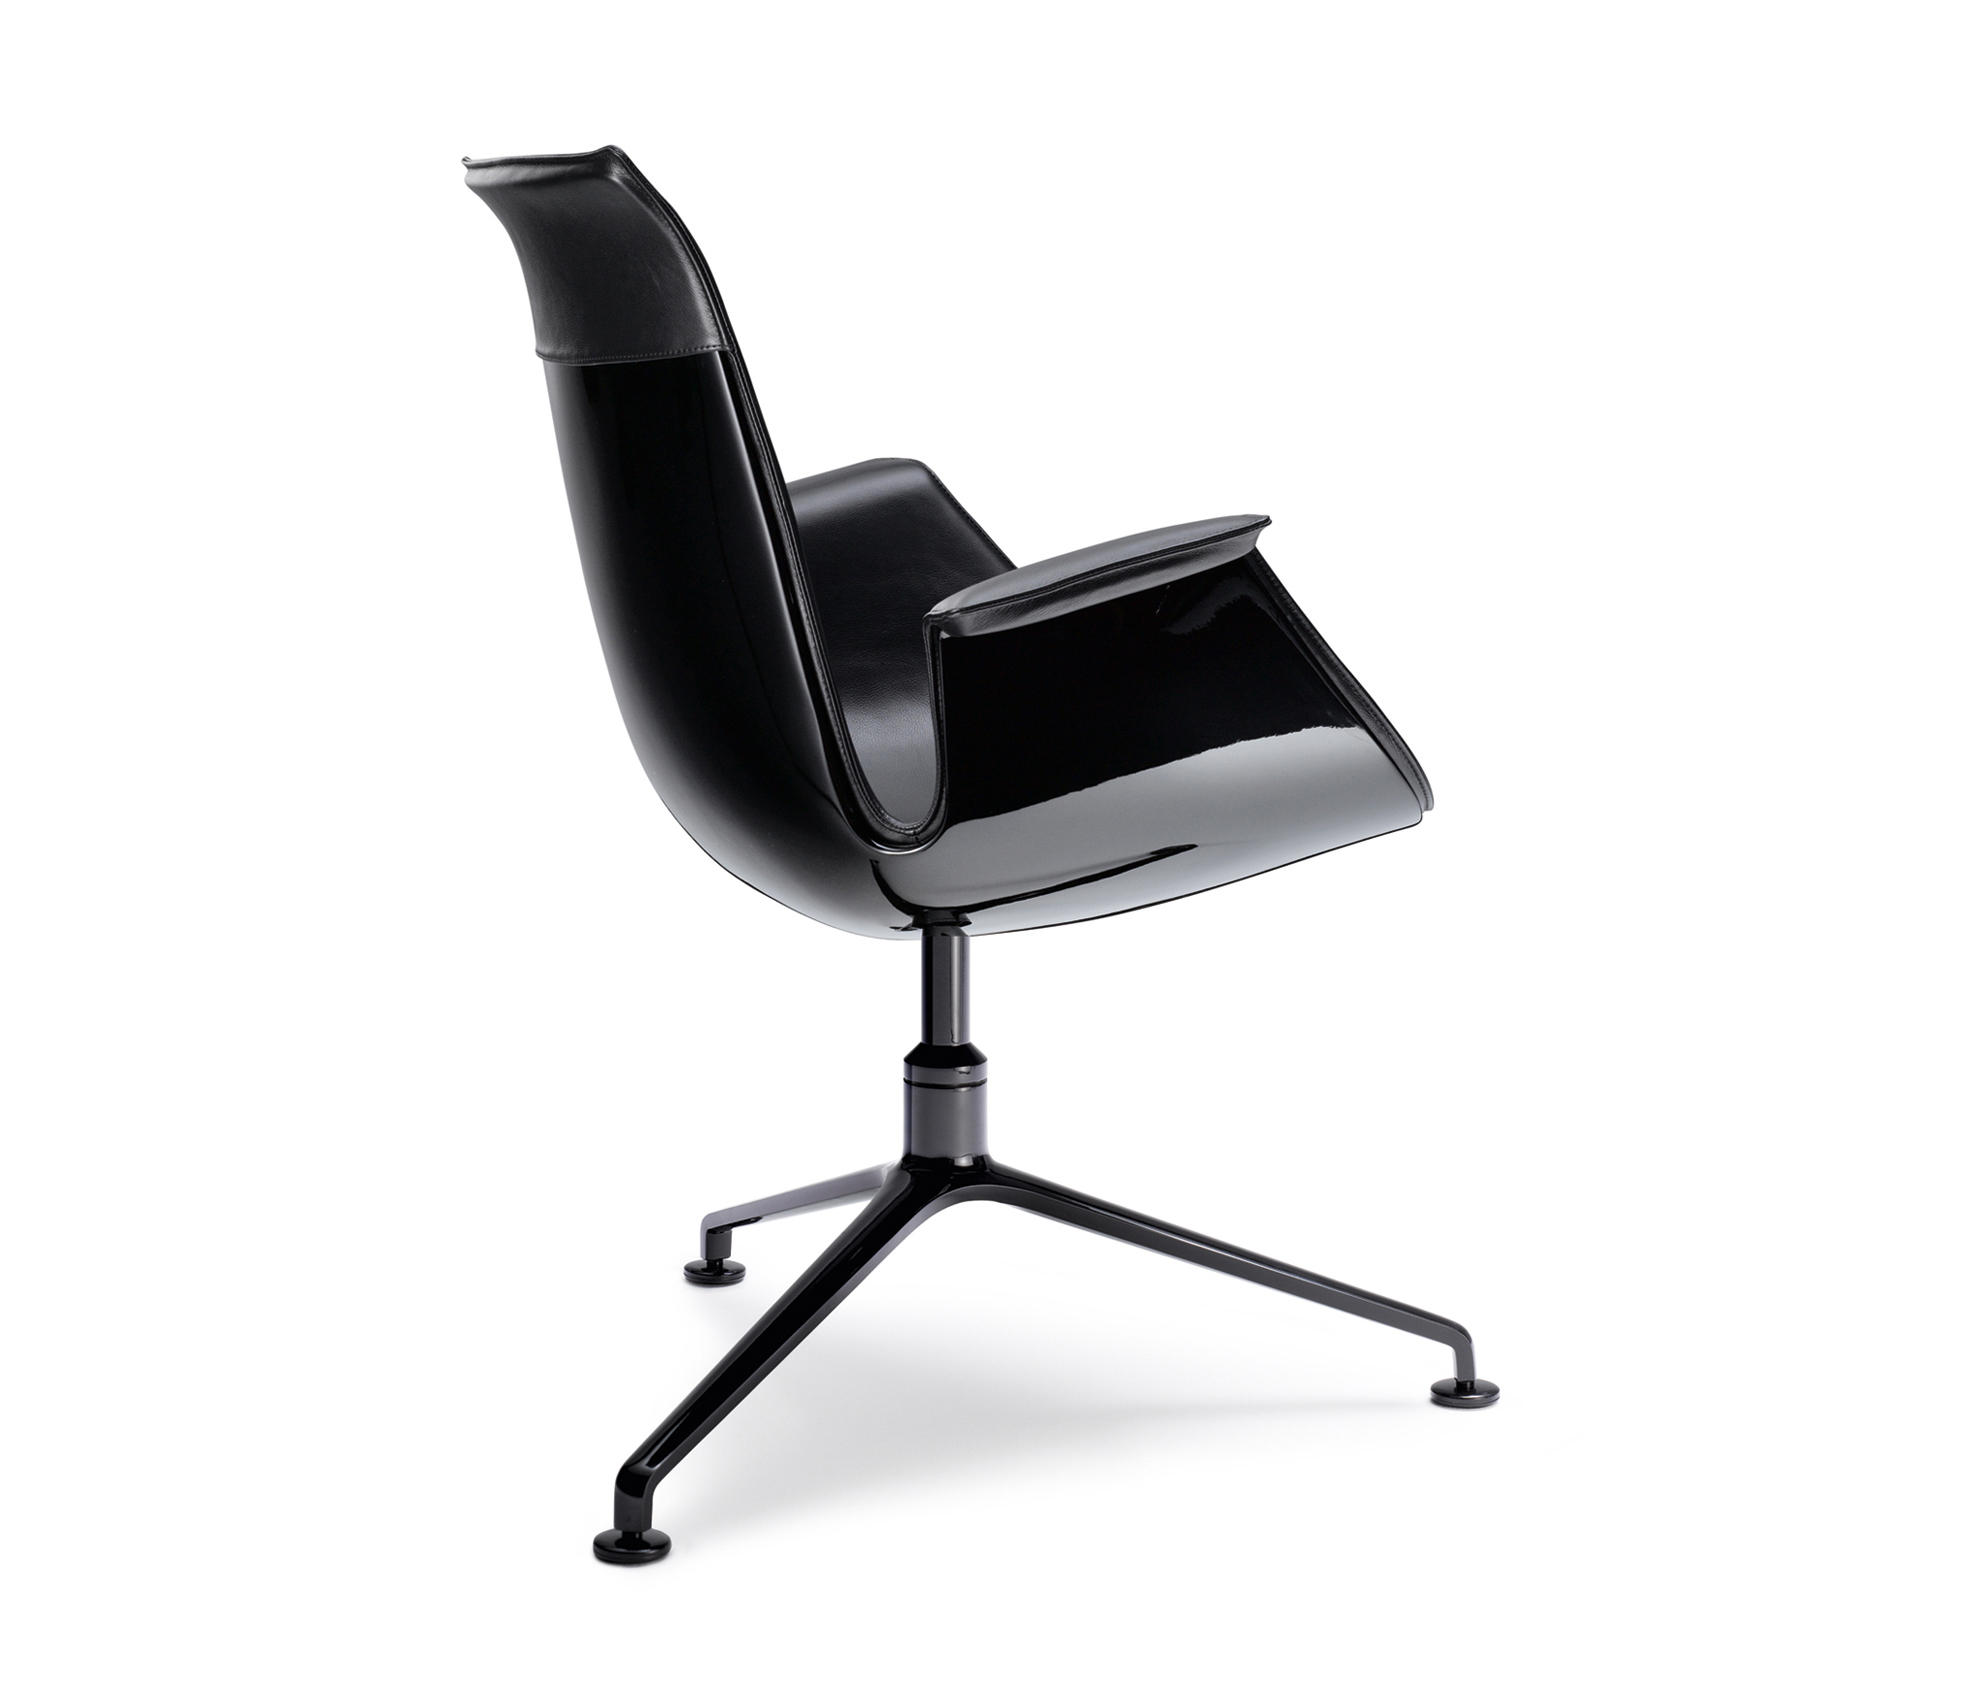 FK 6725 BUCKET SEAT Conference chairs from Walter Knoll